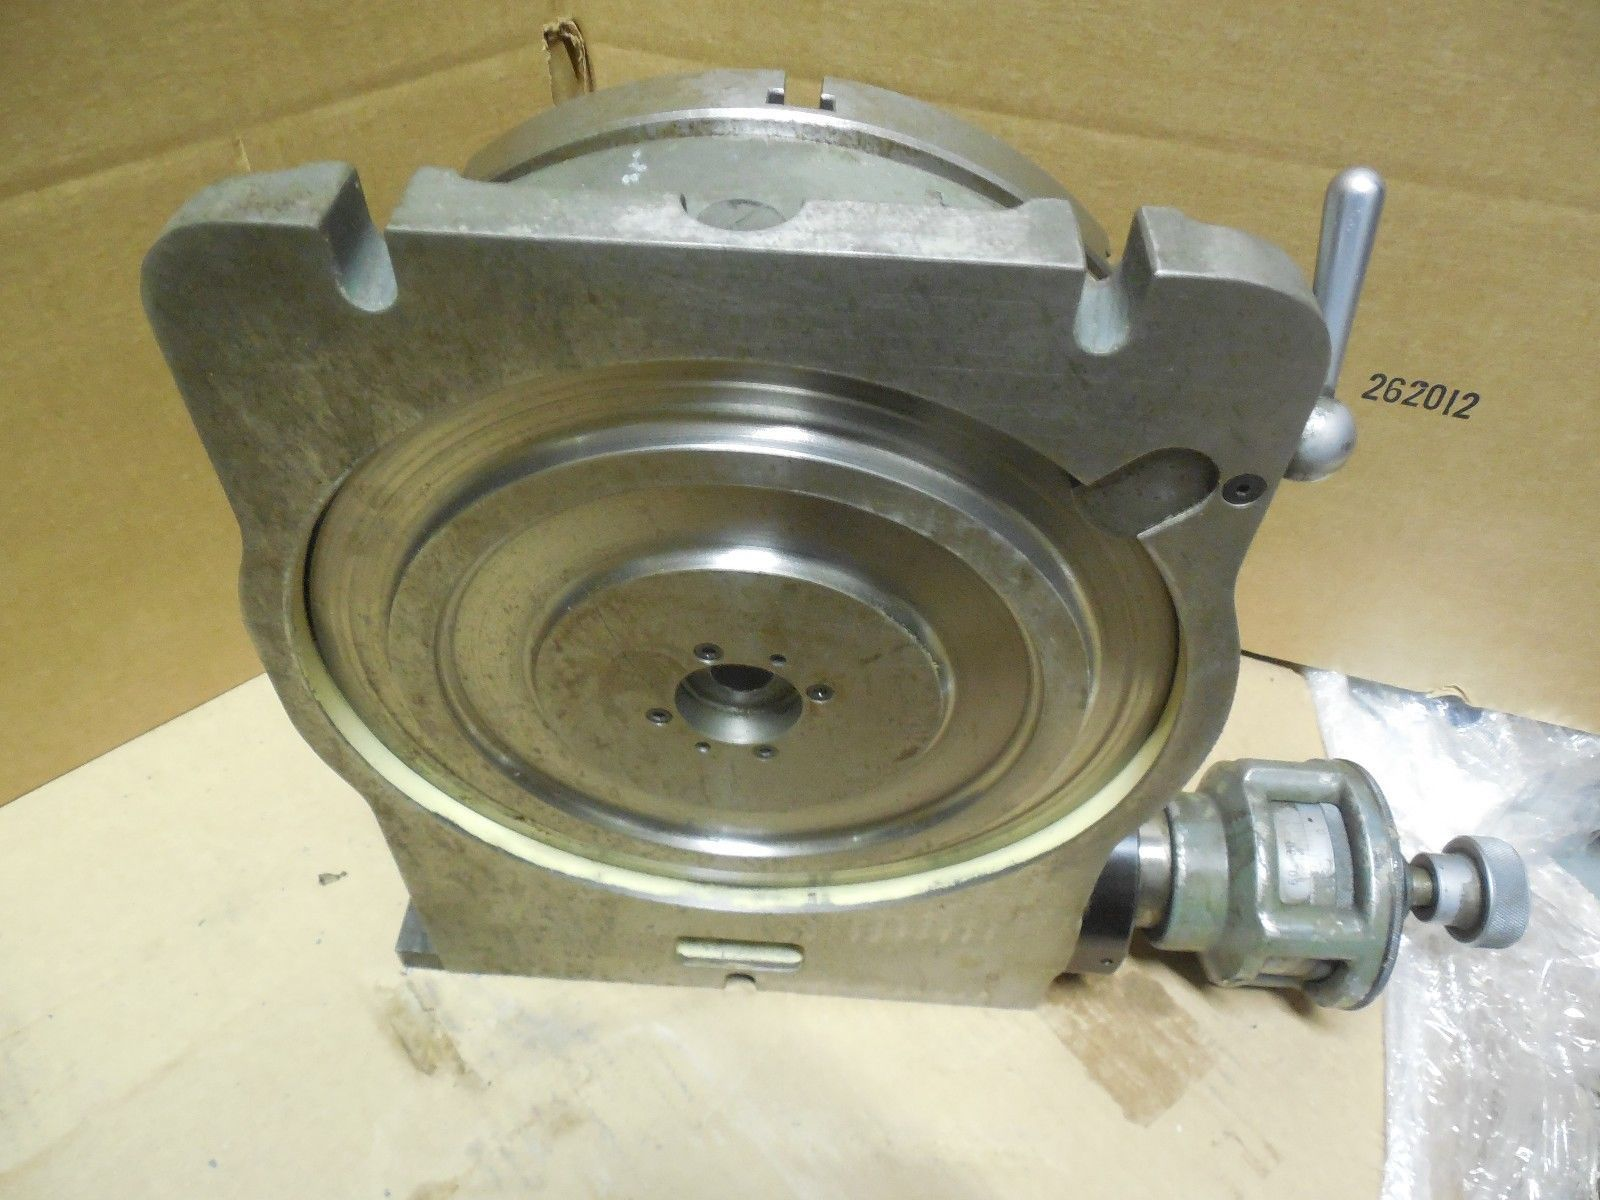 Moore tools 10 3 4 rotary table 12sec s1053 for jig for 12 rotary table